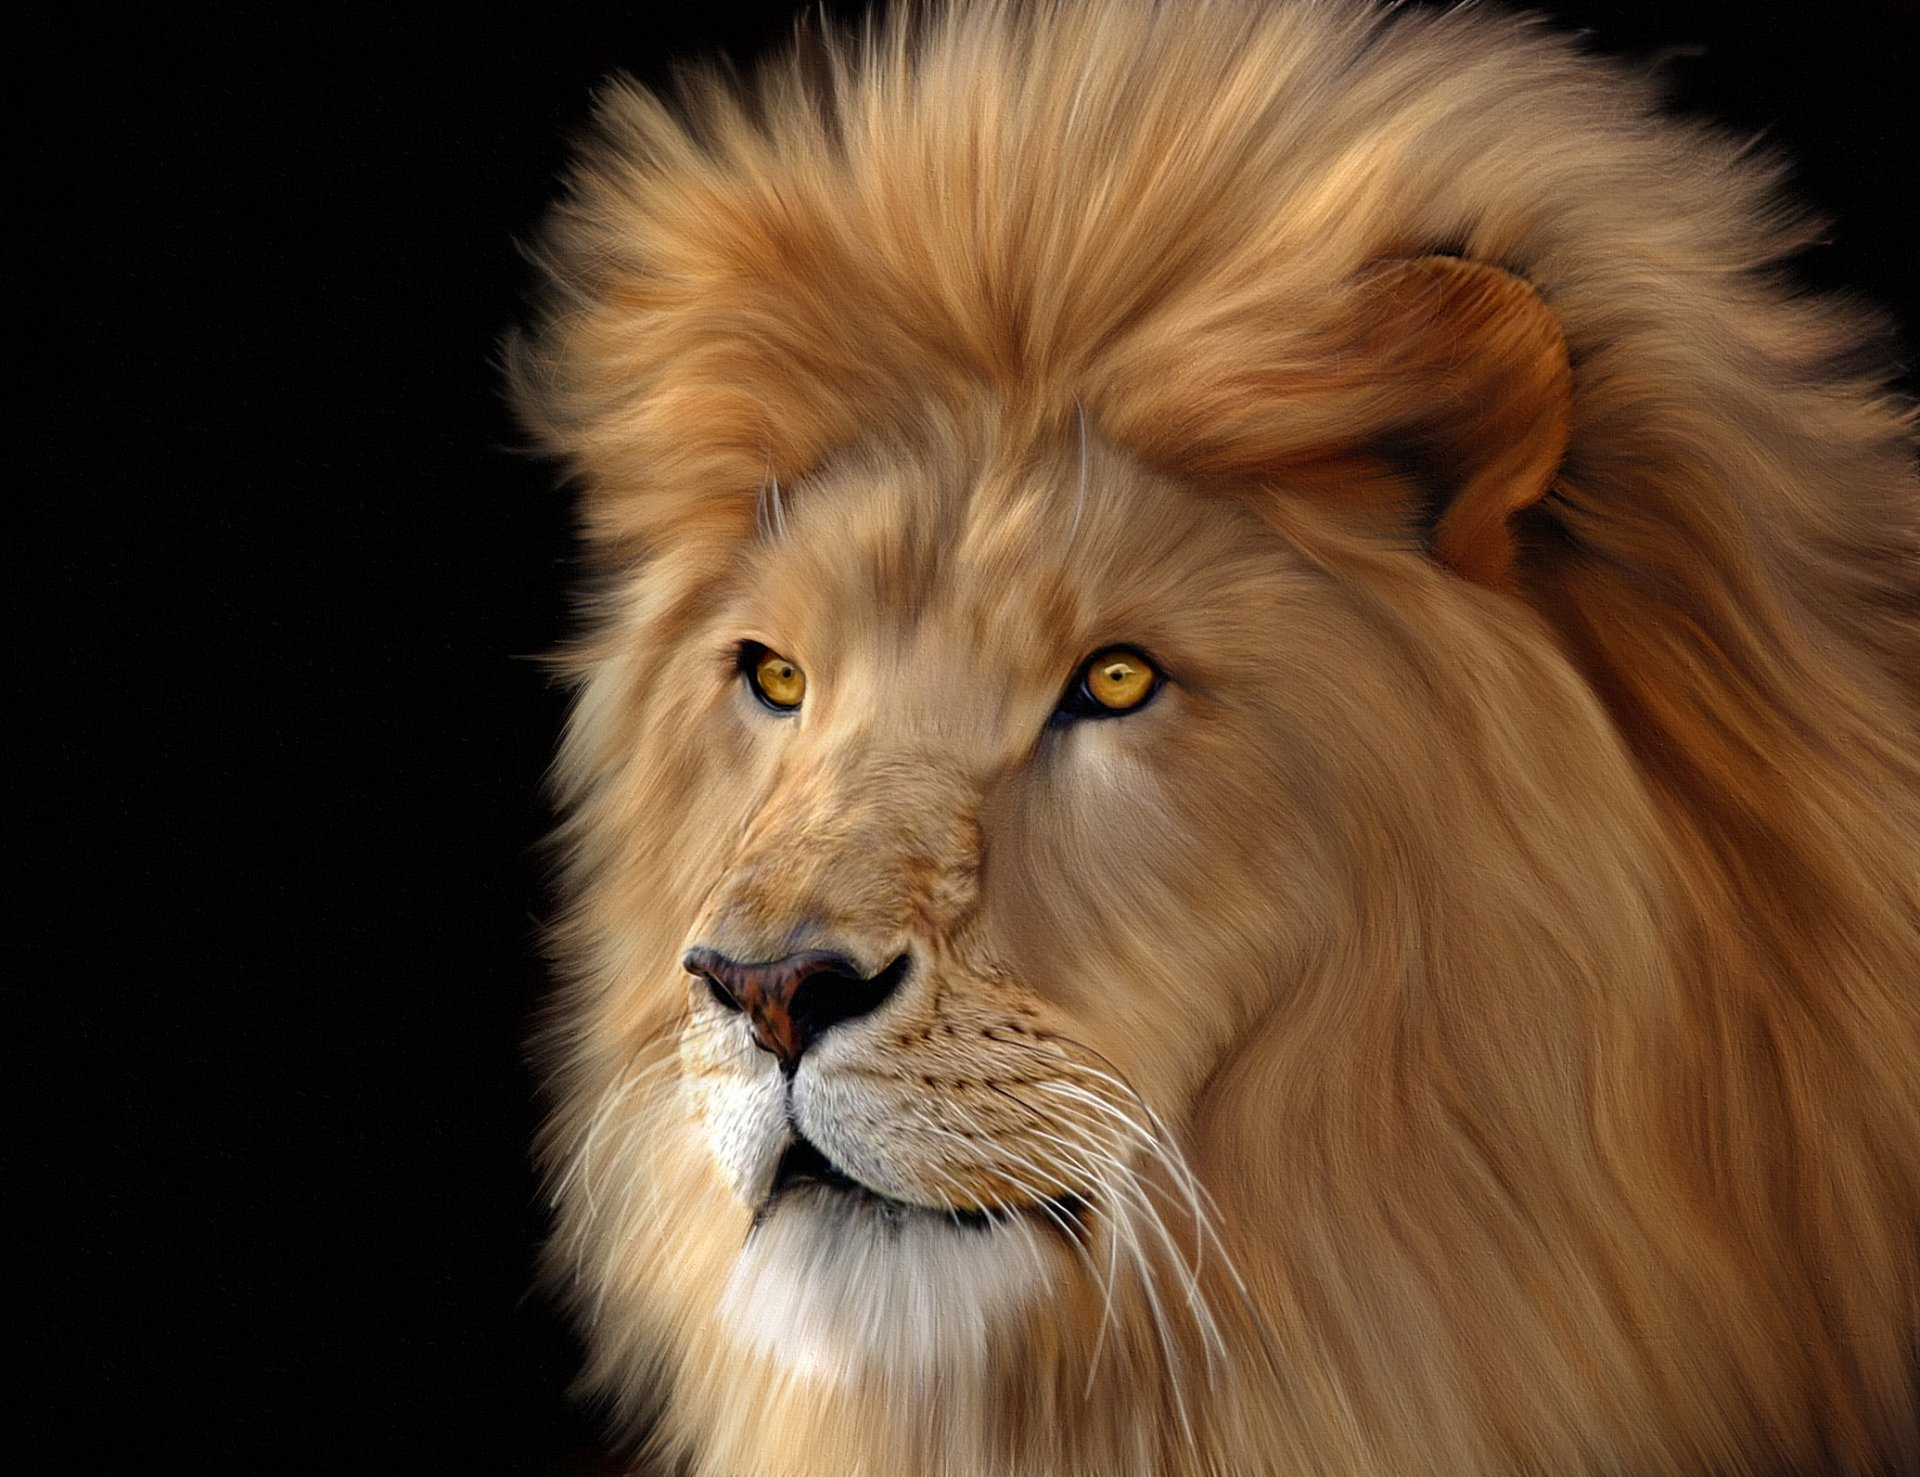 Male Lion HD Wallpaper   Background Image   2070x1592   ID ...